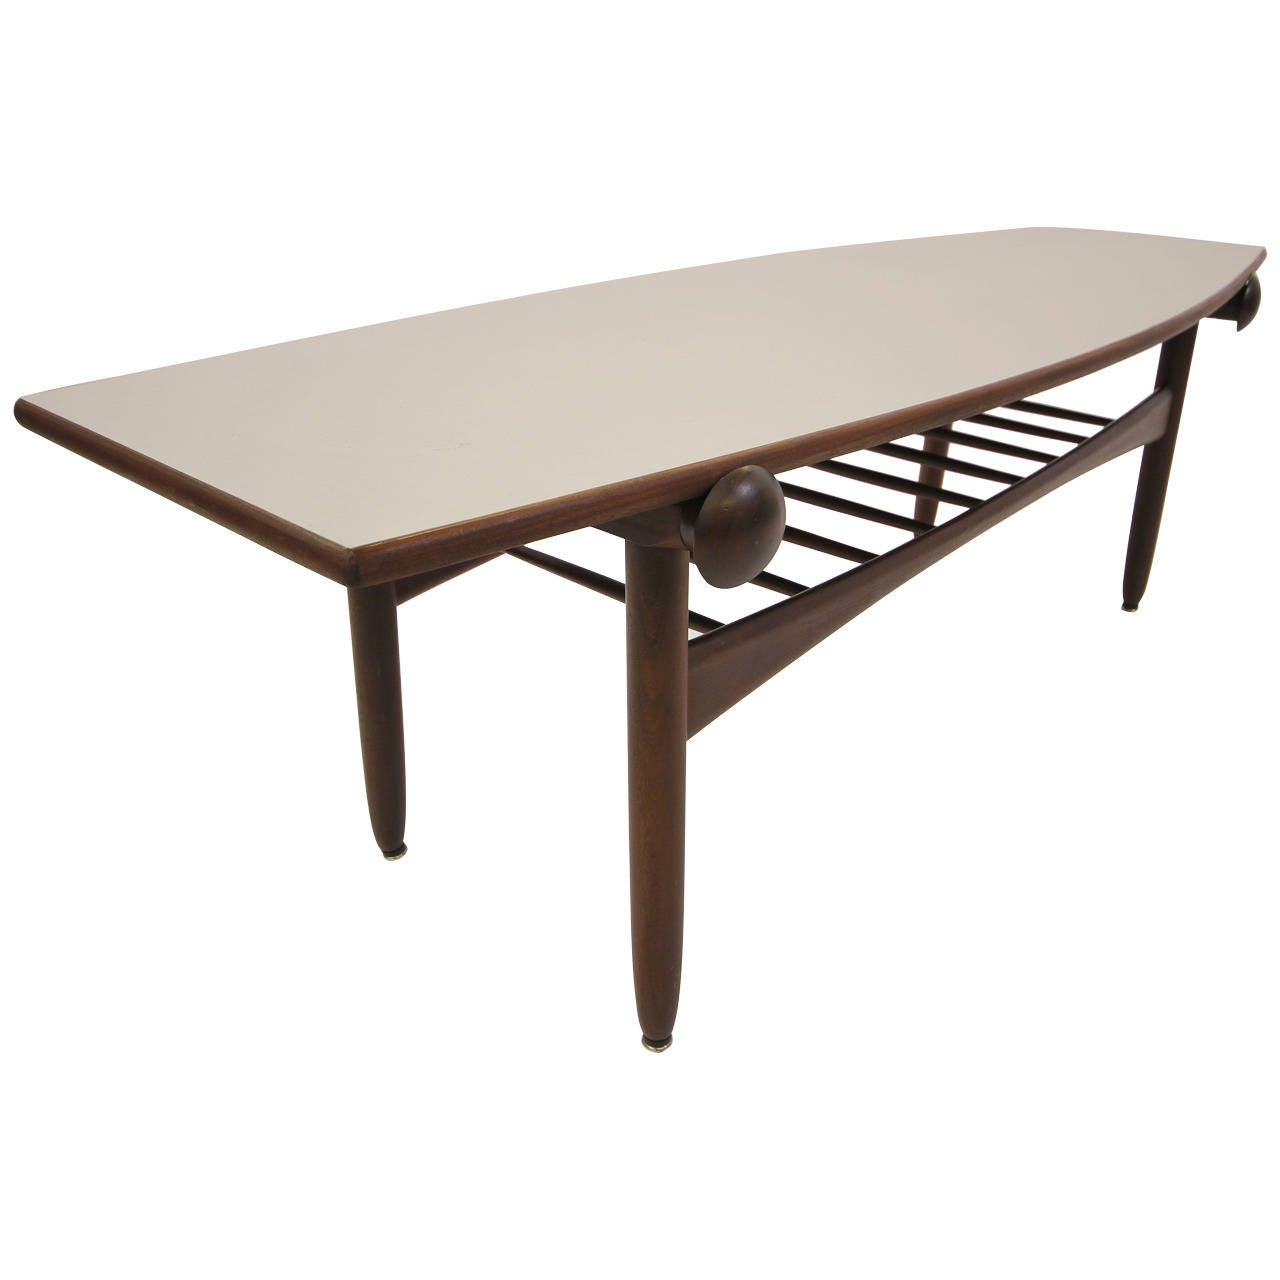 Danish Modern Flip Top Coffee Table In The Manner Of Finn Juhl At 1stdibs